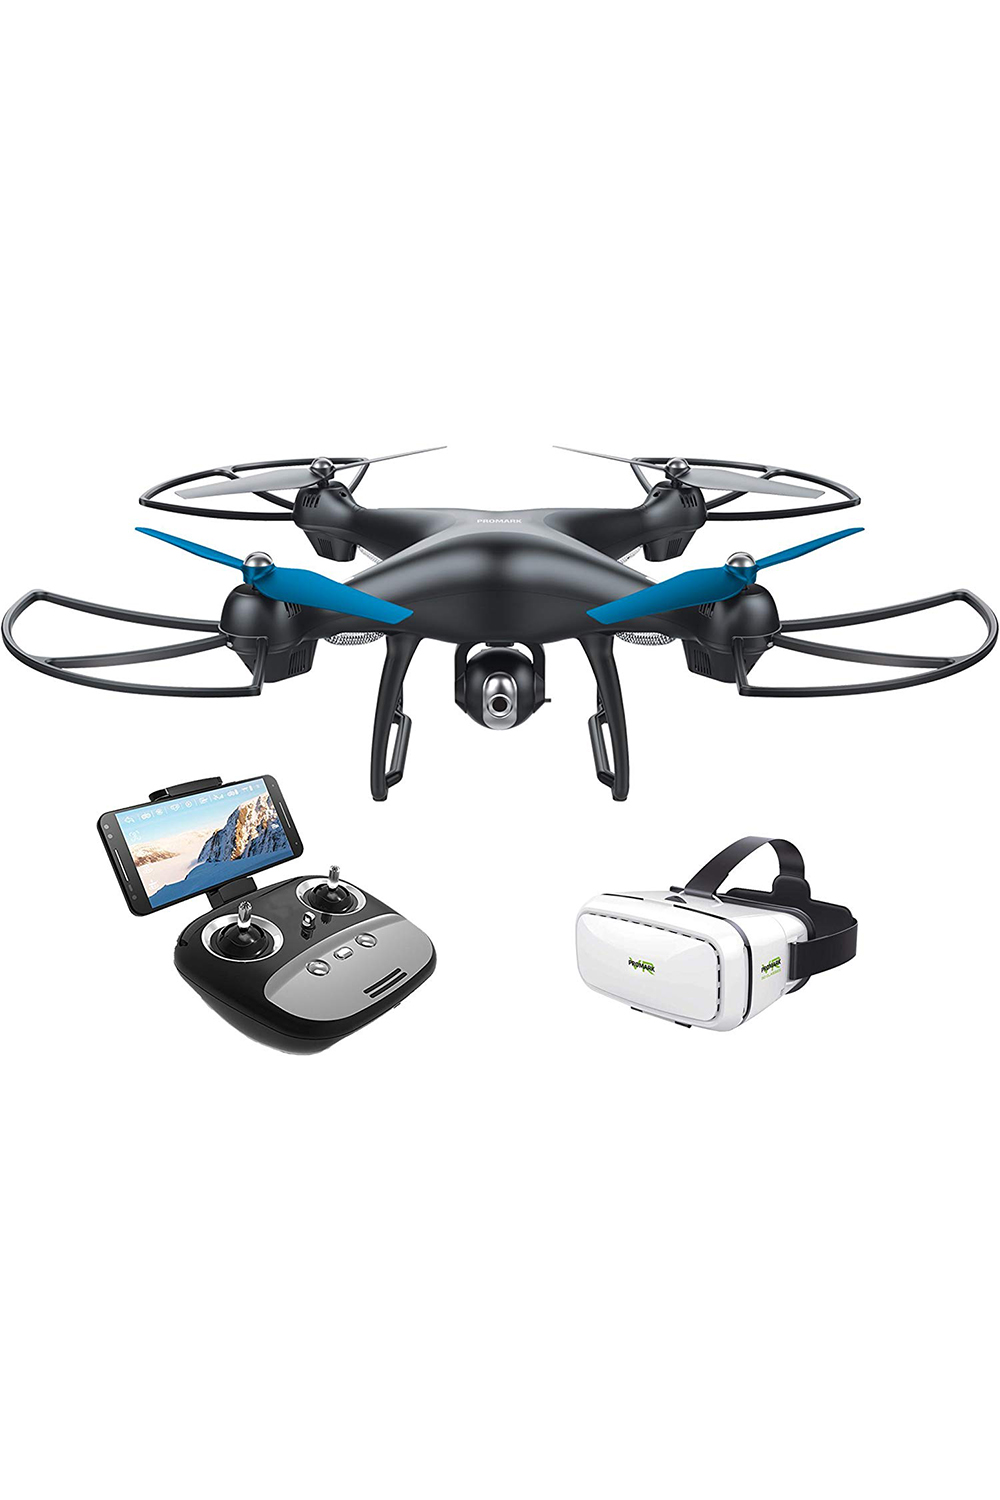 Promark GPS Shadow Drone Review